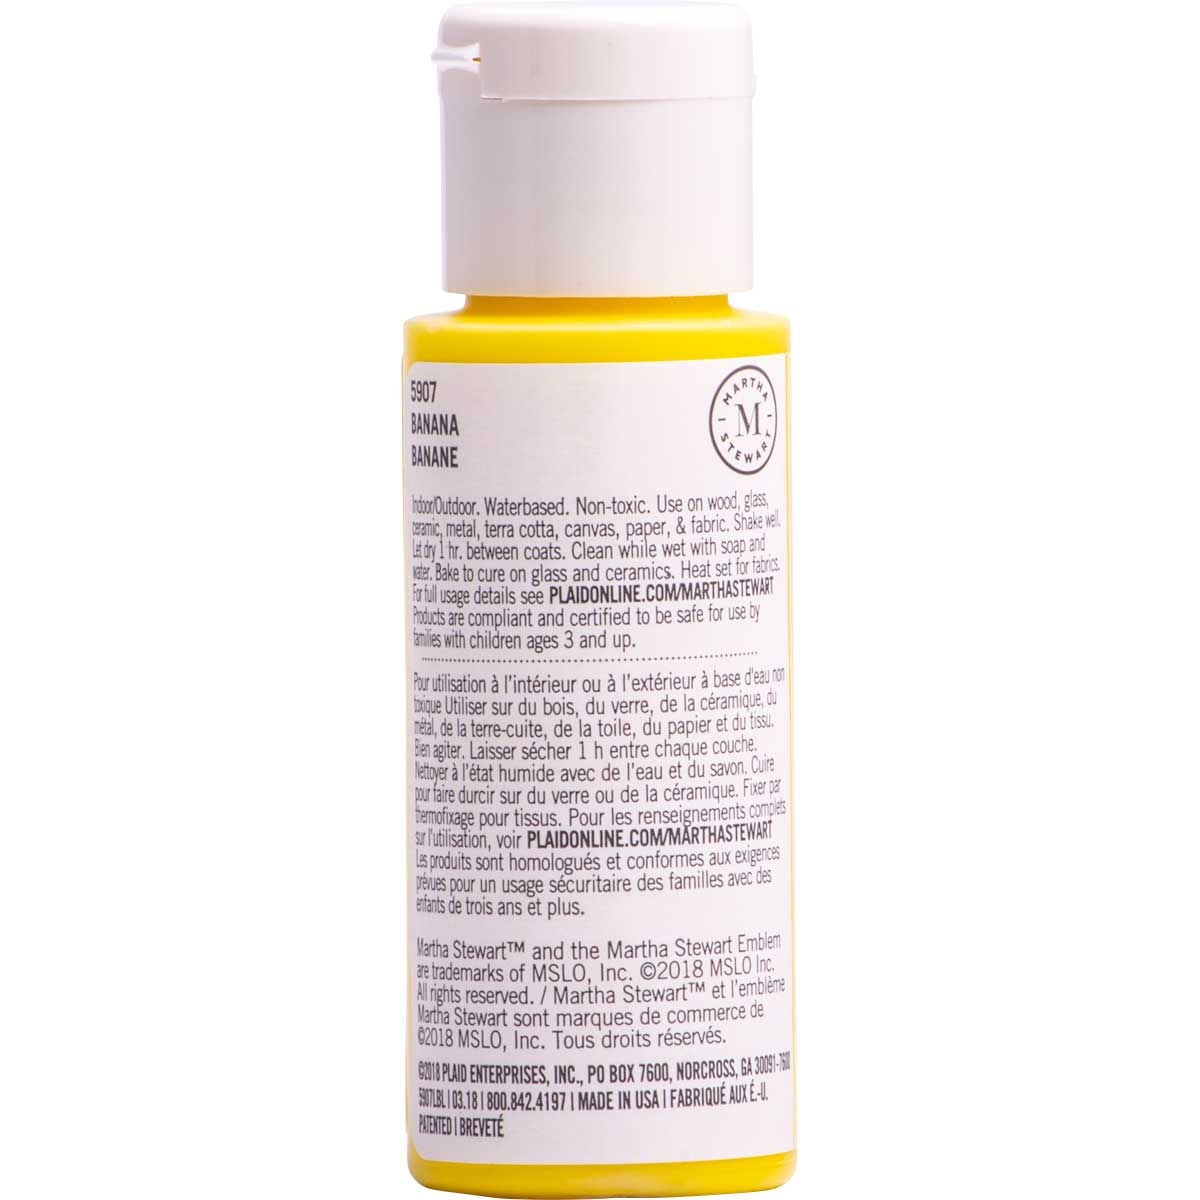 Martha Stewart ® Multi-Surface Satin Acrylic Craft Paint CPSIA - Banana, 2 oz. - 5907